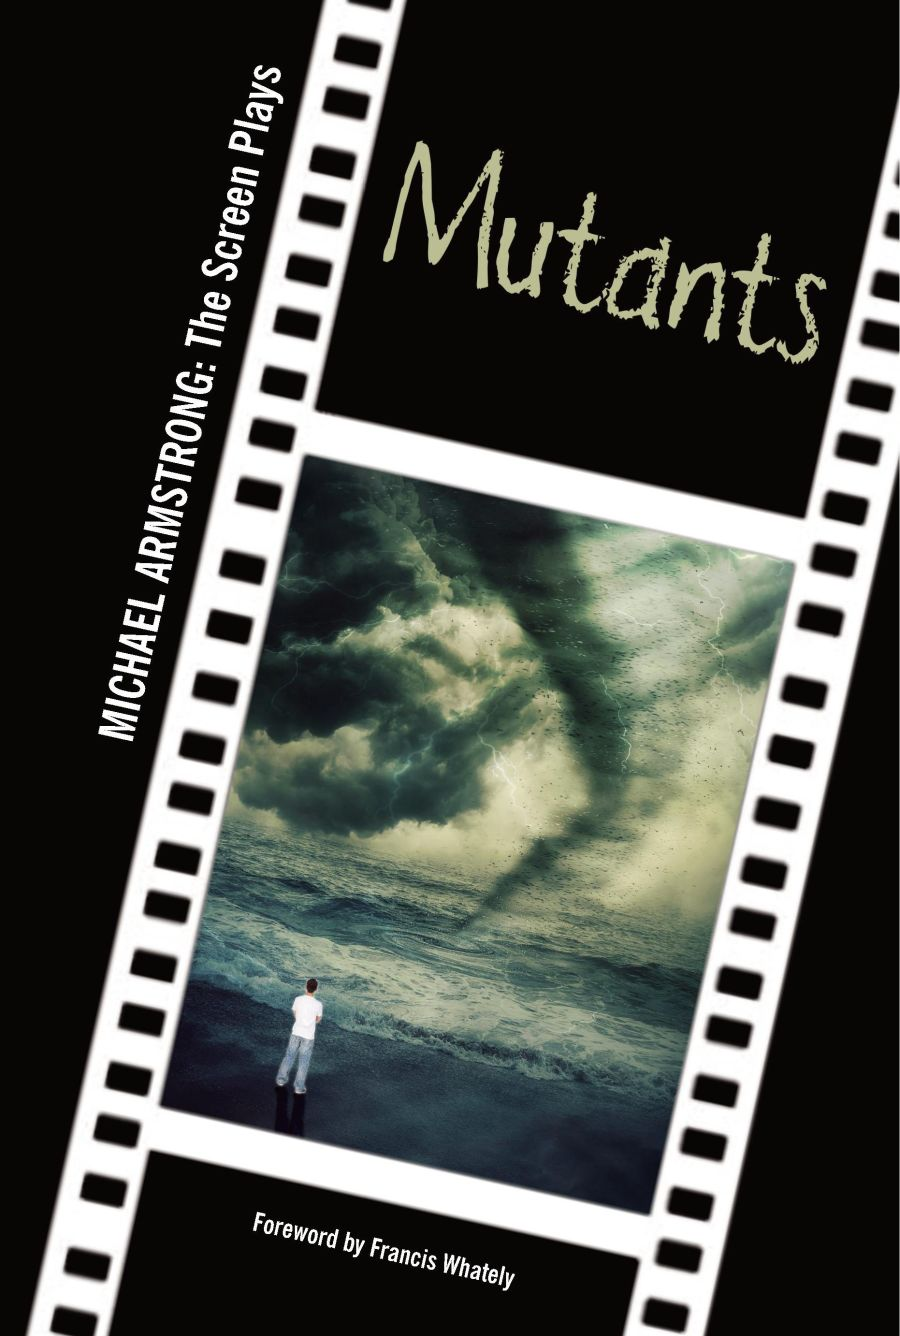 Mutants - Screen Play (Paperback)